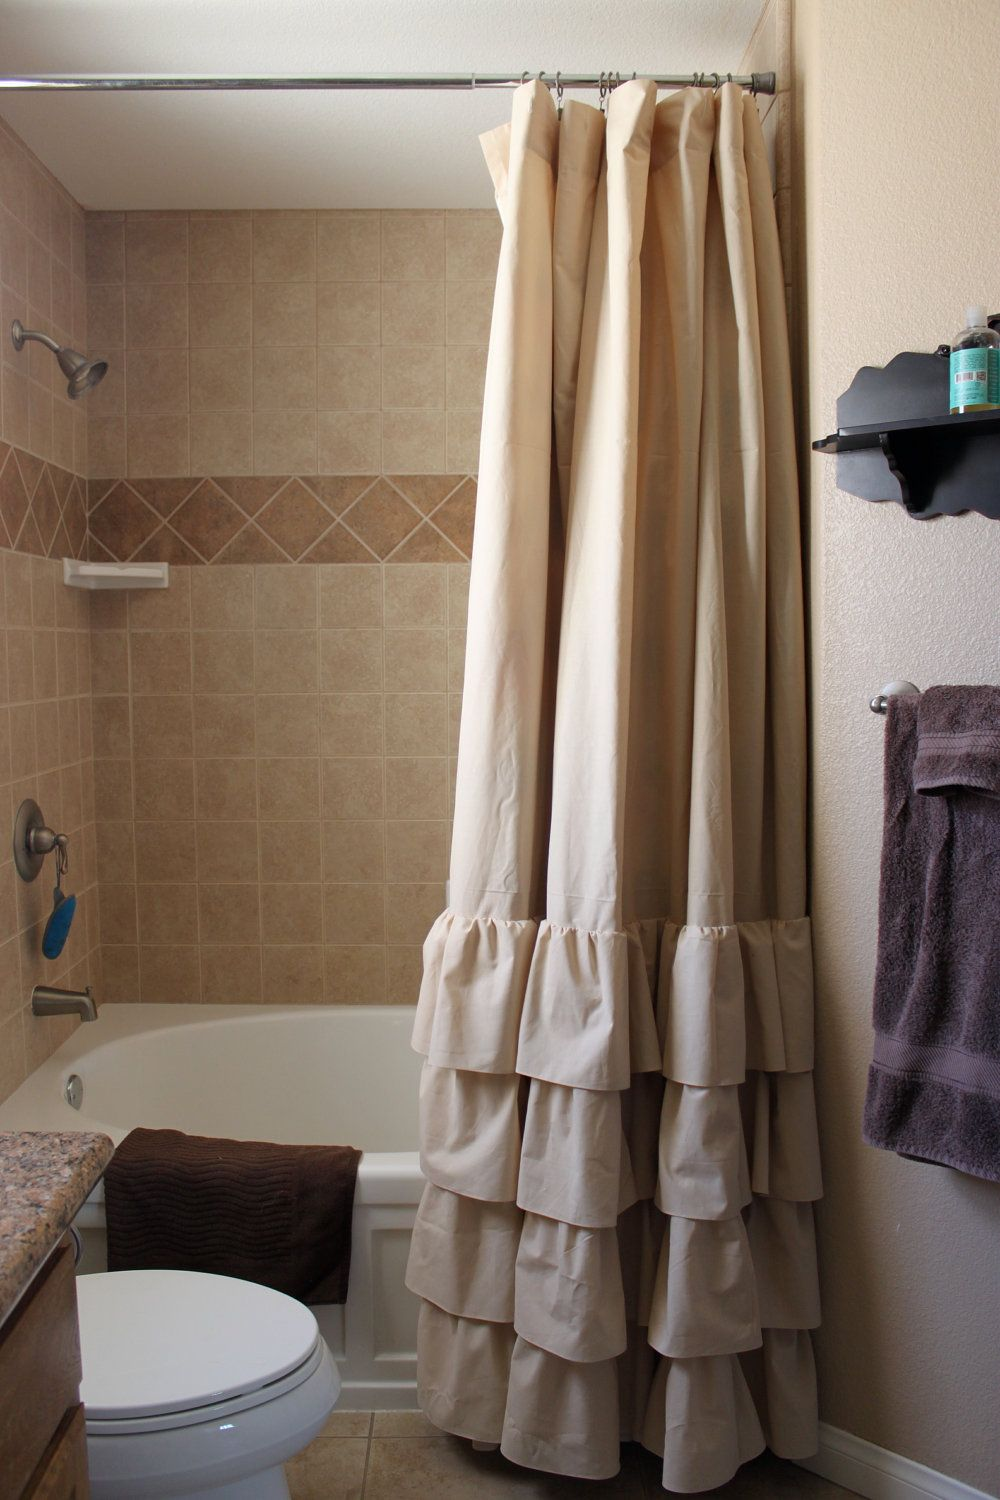 Tan Four Ruffle Shower Curtain By SelahJamesHandmade On Etsy 10000